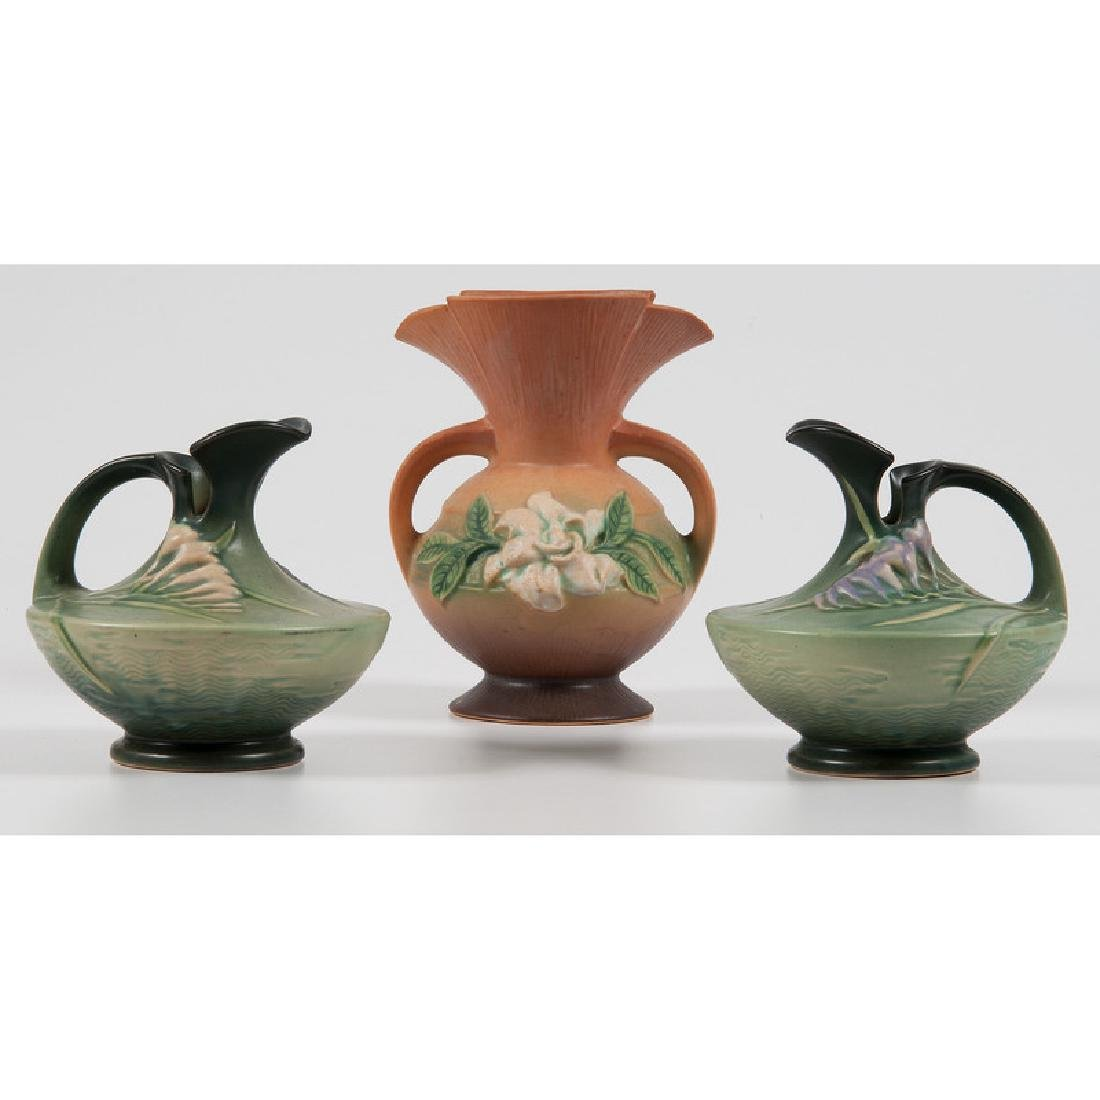 Roseville Pottery Pitchers and Vase